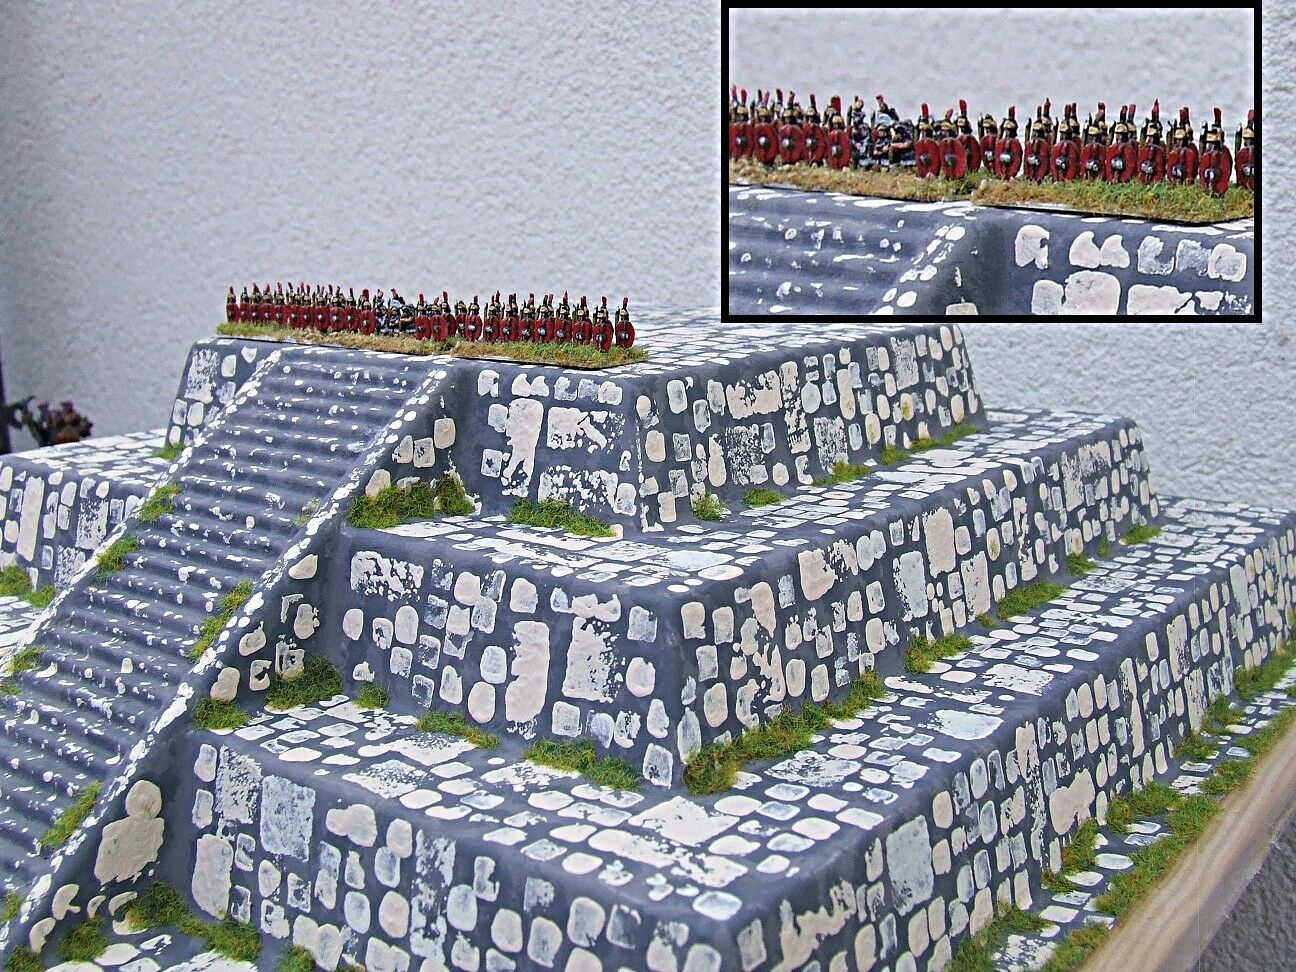 6mm 15mm 28mm PYRAMID  Over 30cm square  Pro-Painted